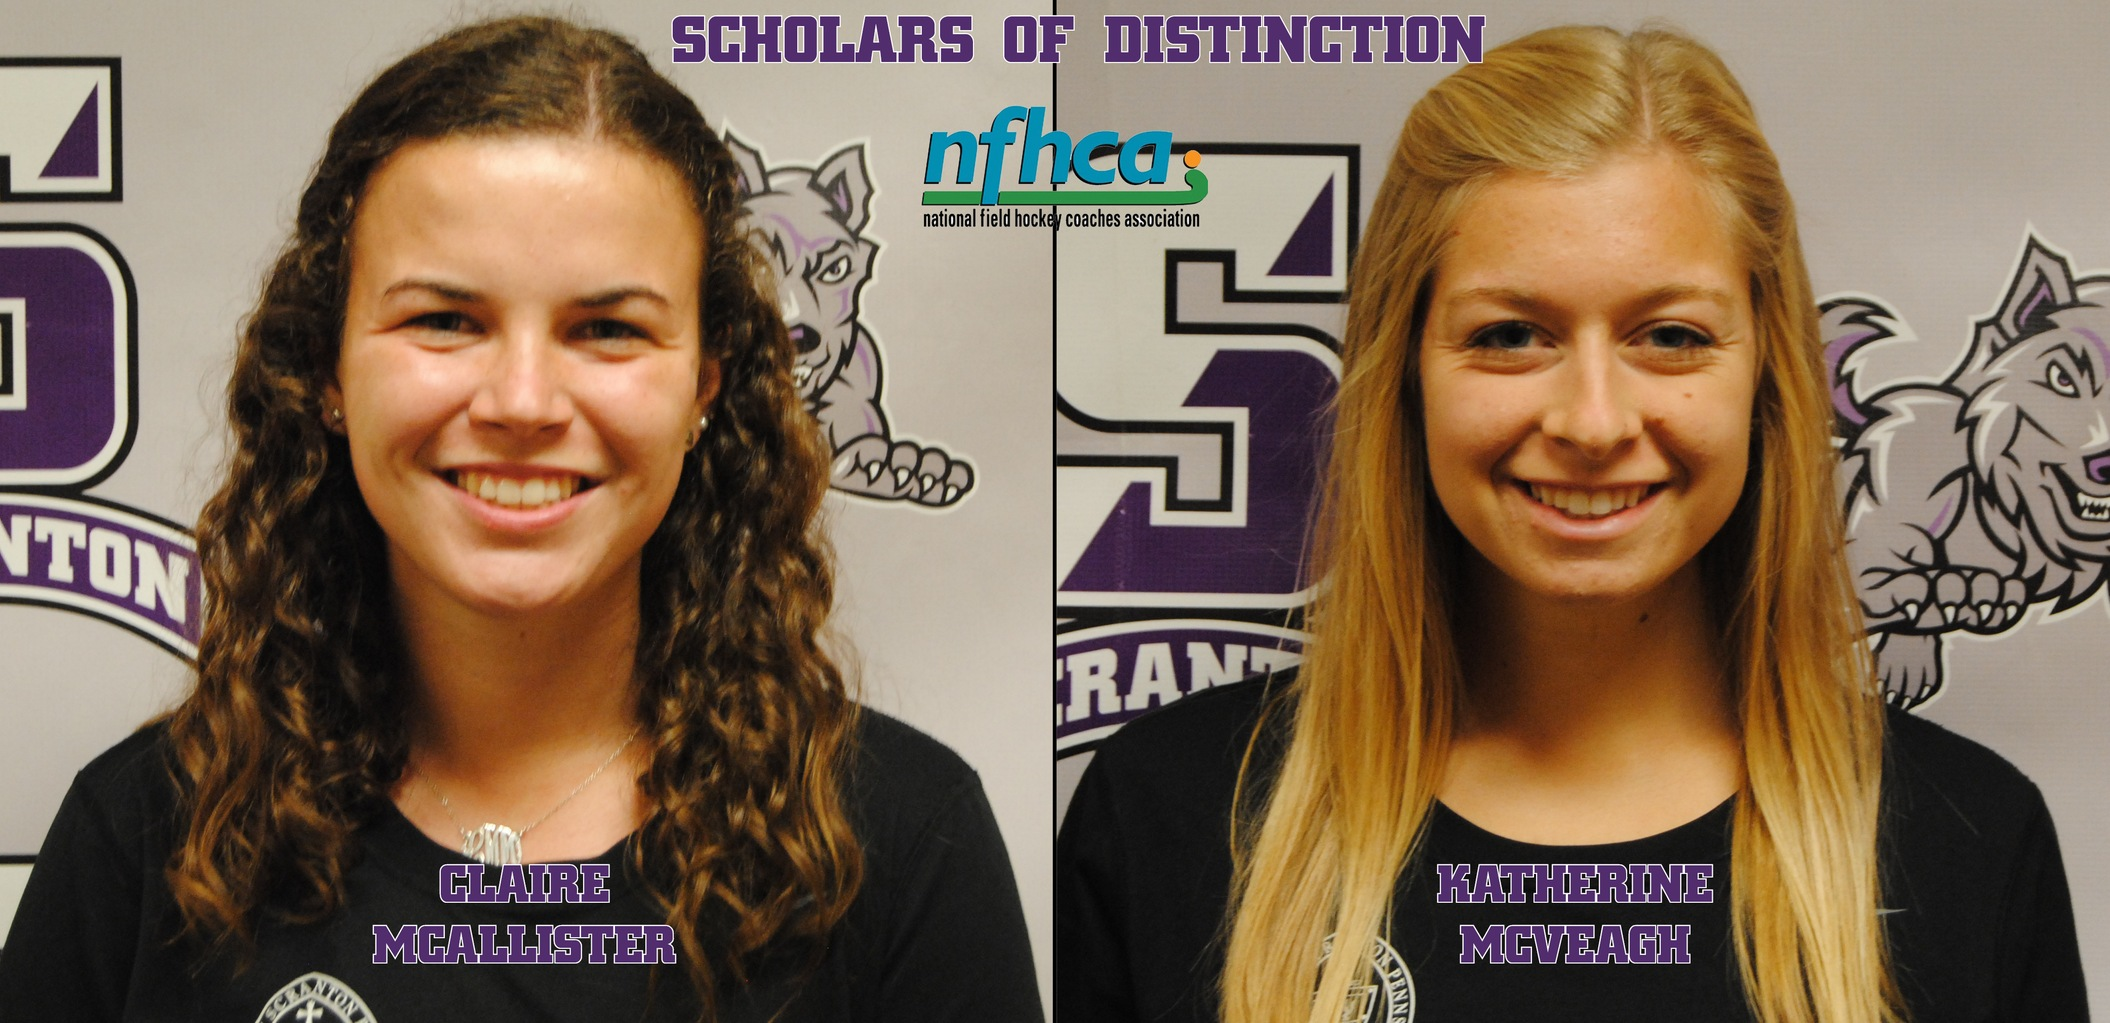 McAllister, McVeagh Earn NFHCA Scholar of Distinction Award; 12 Named to National Academic Squad